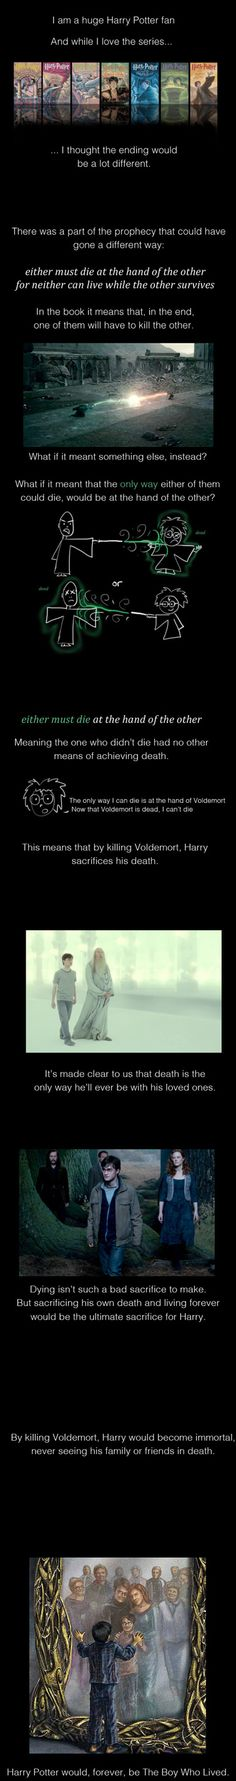 Never thought about this before. Interesting theory on an alternate ending - Imgur